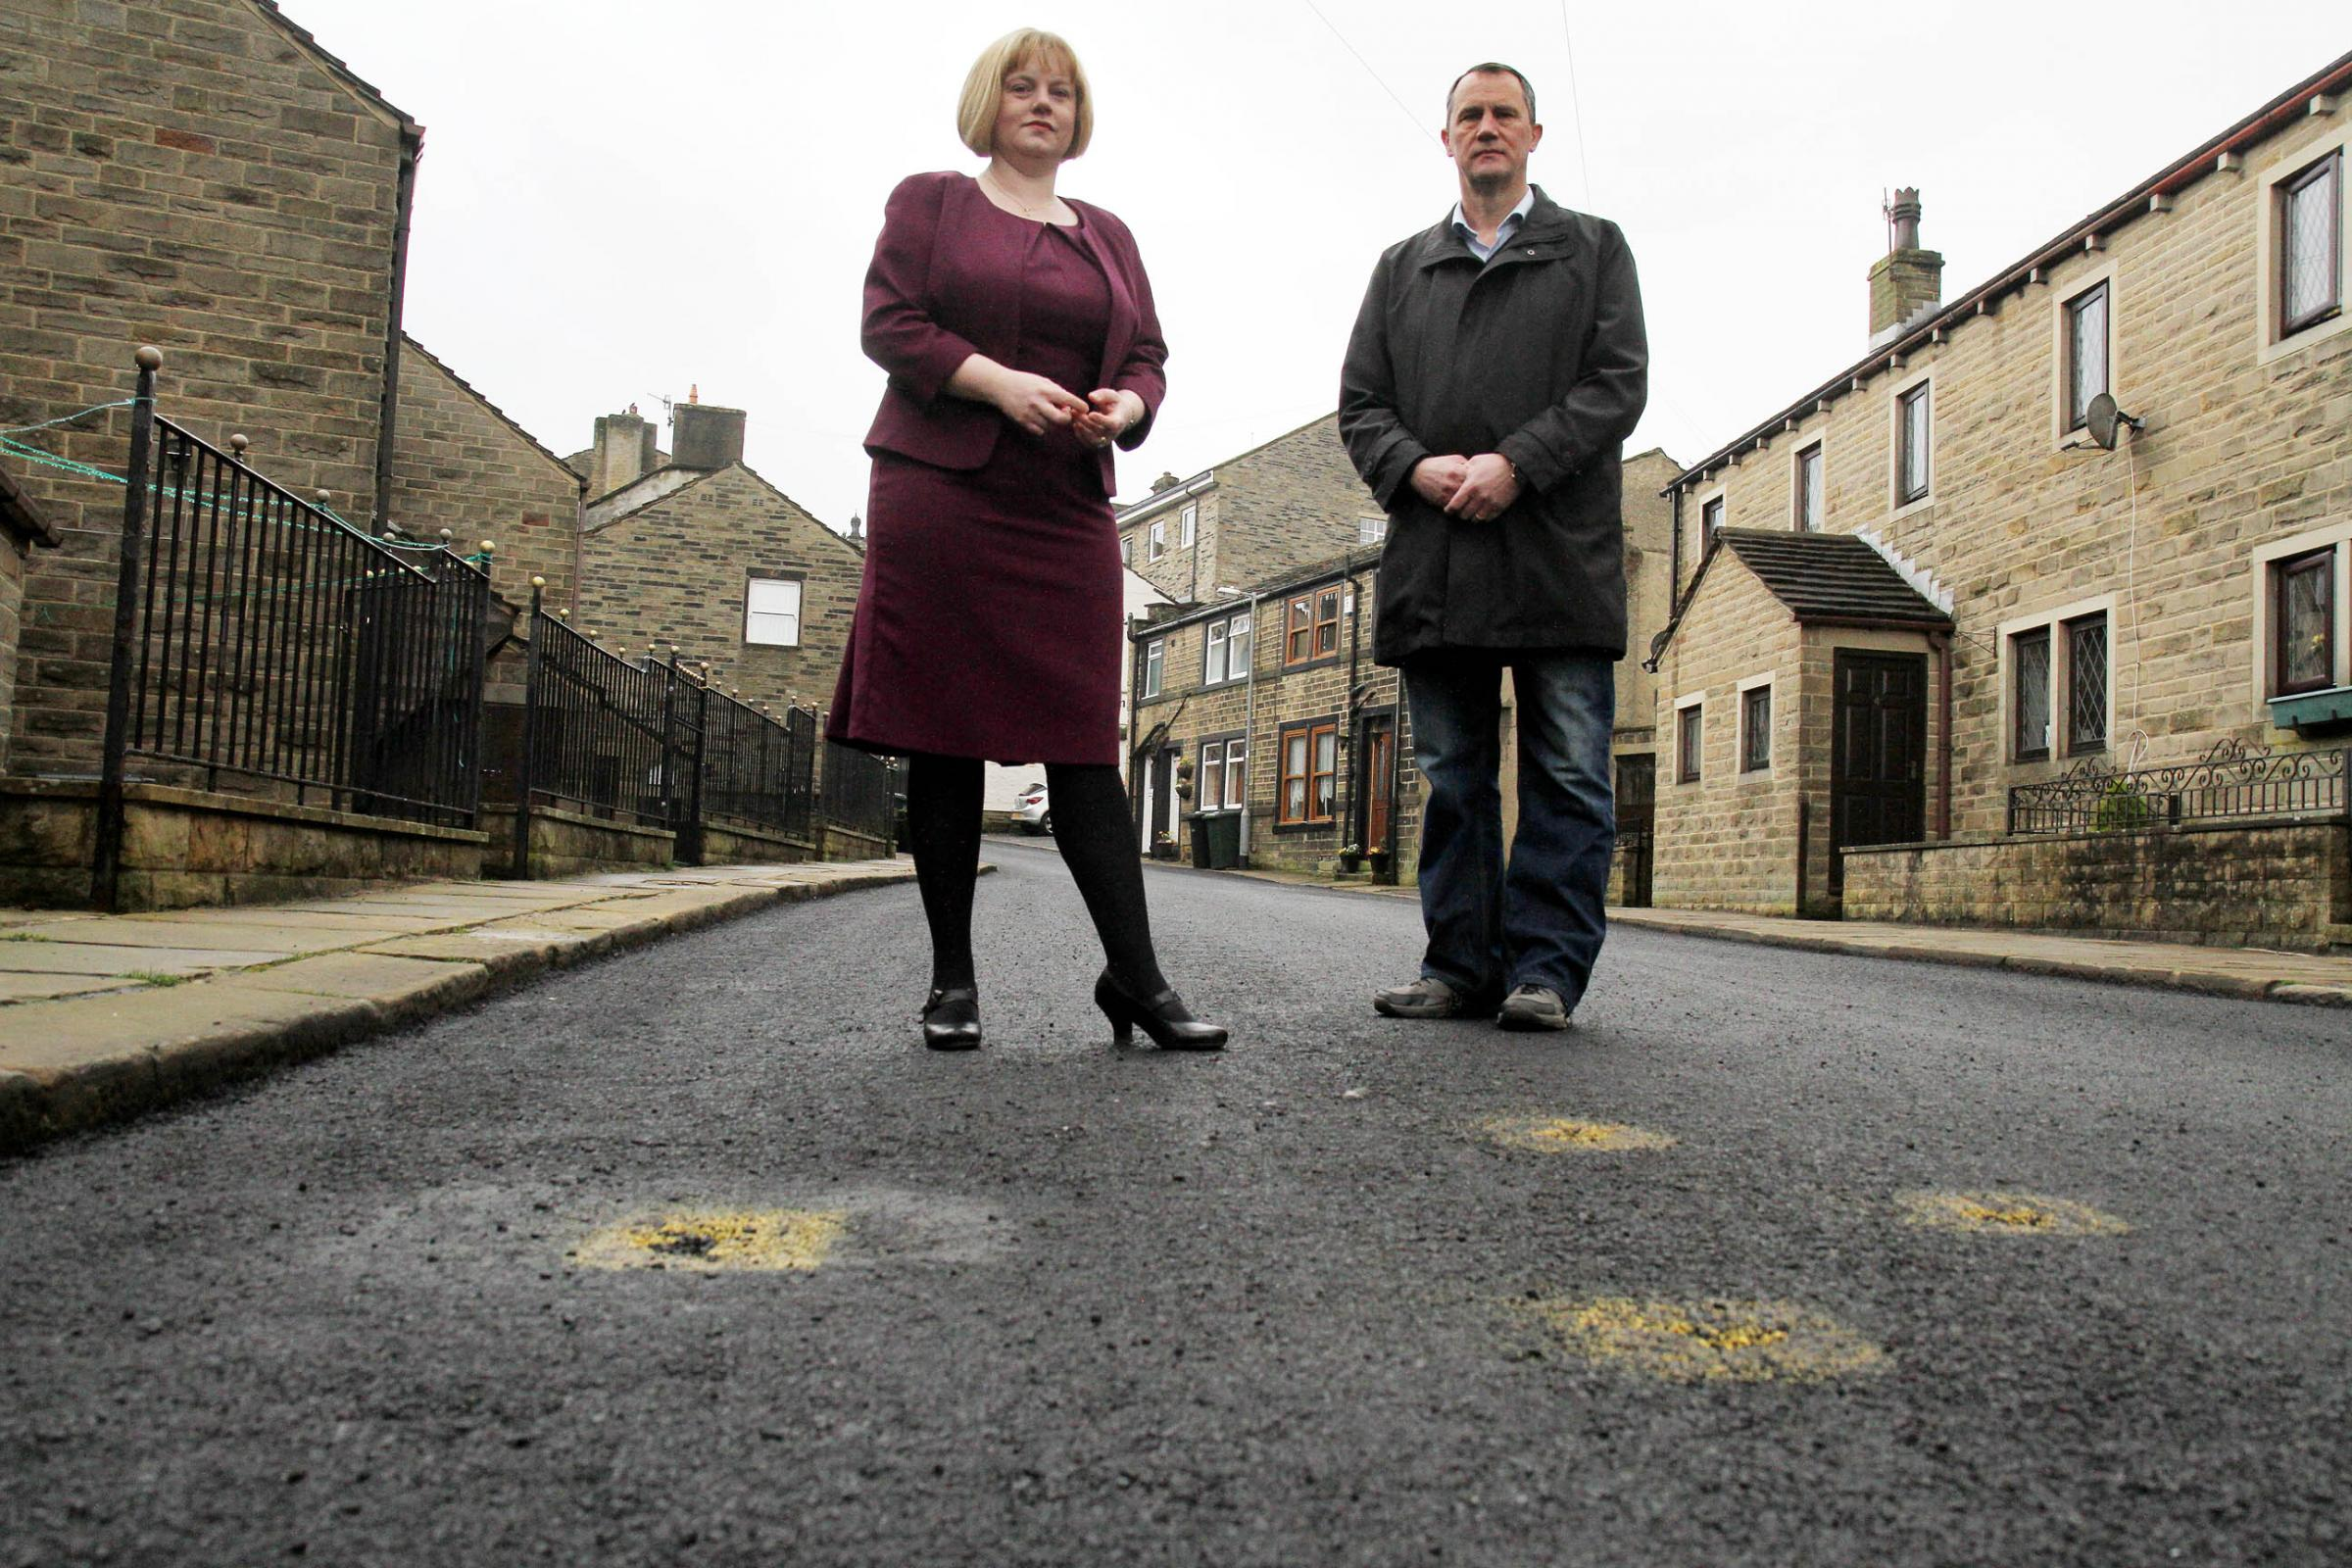 Councillors Rebecca Poulsen and Glen Miller in Changegate, Haworth, which has already been marked for repairs after recent resurfacing work was carried out